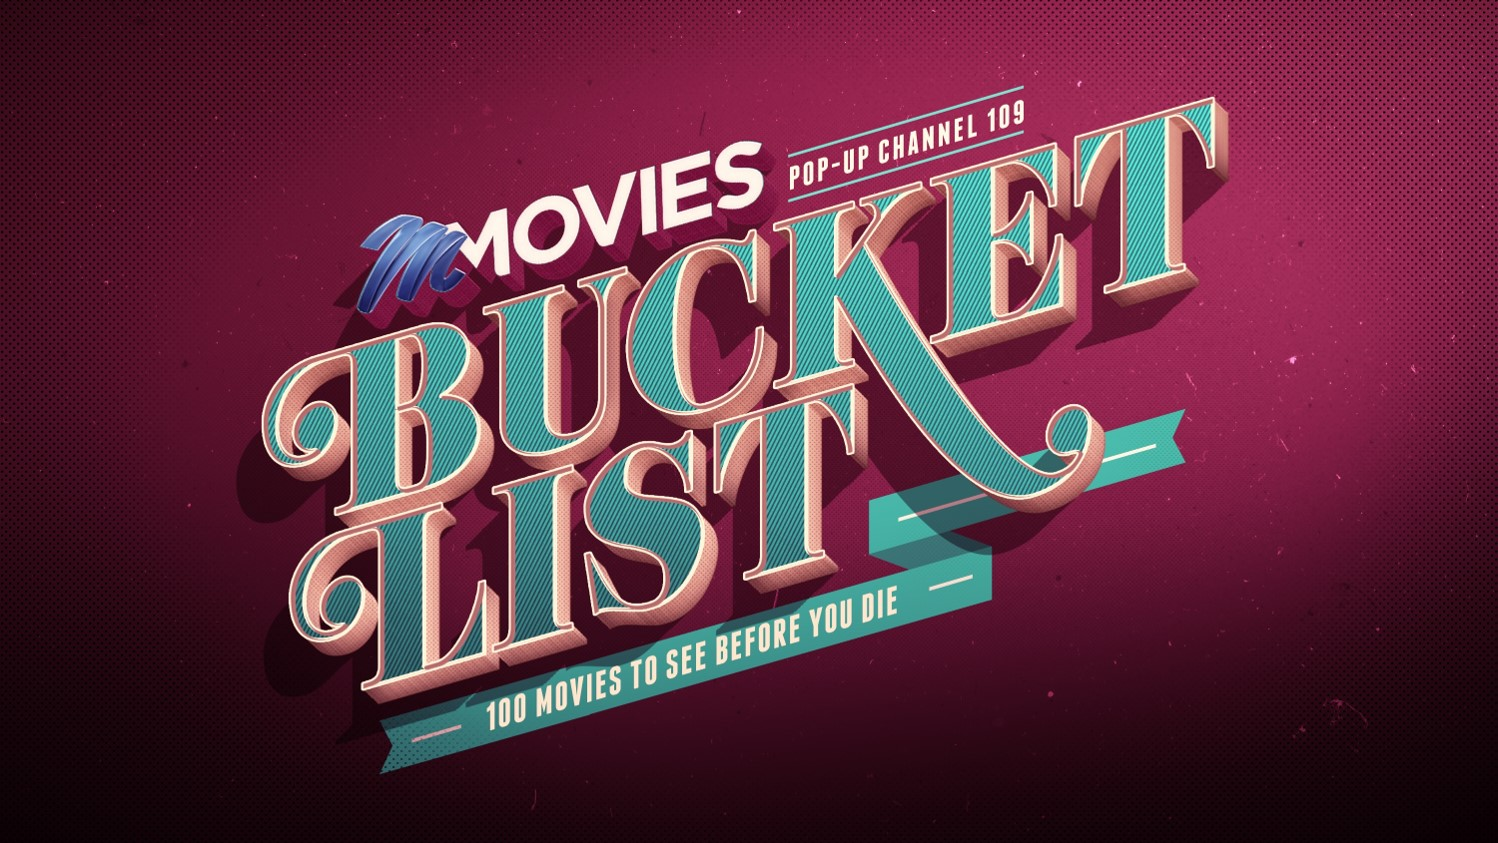 TV with Thinus: The M-Net Movies Bucket List channel on DStv will